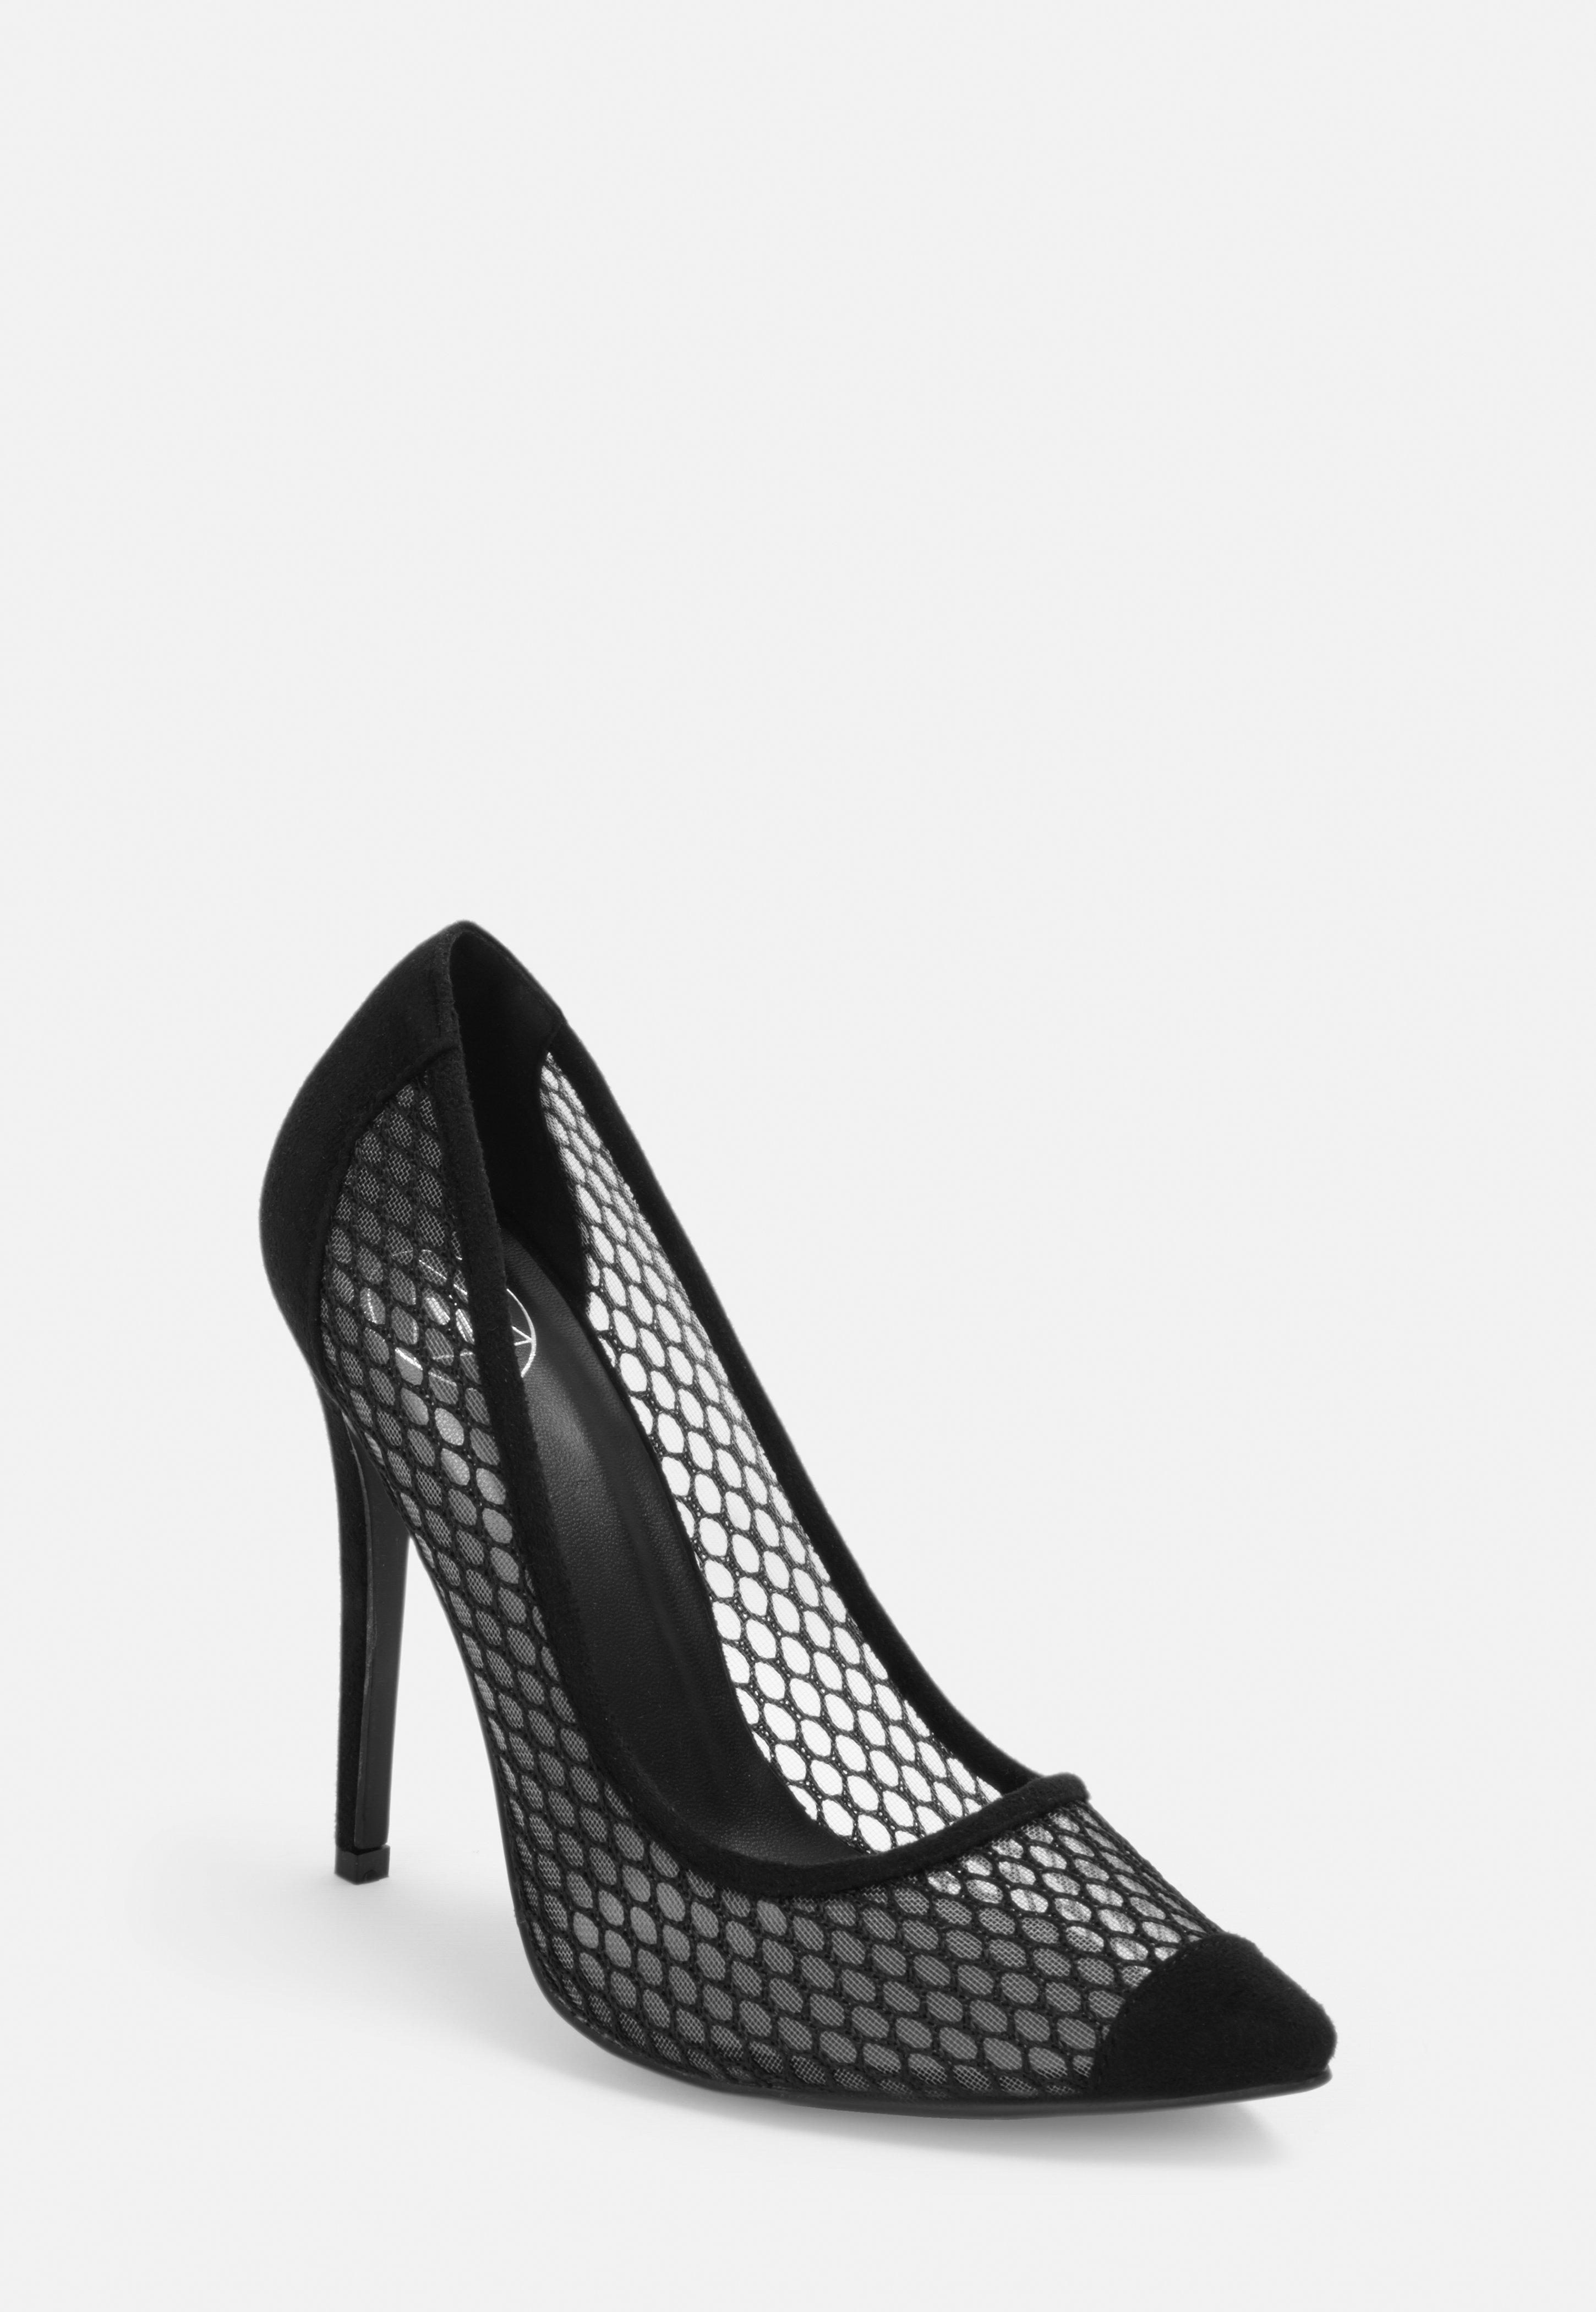 exquisite style choose official up-to-date styling Black Fishnet Court Heels